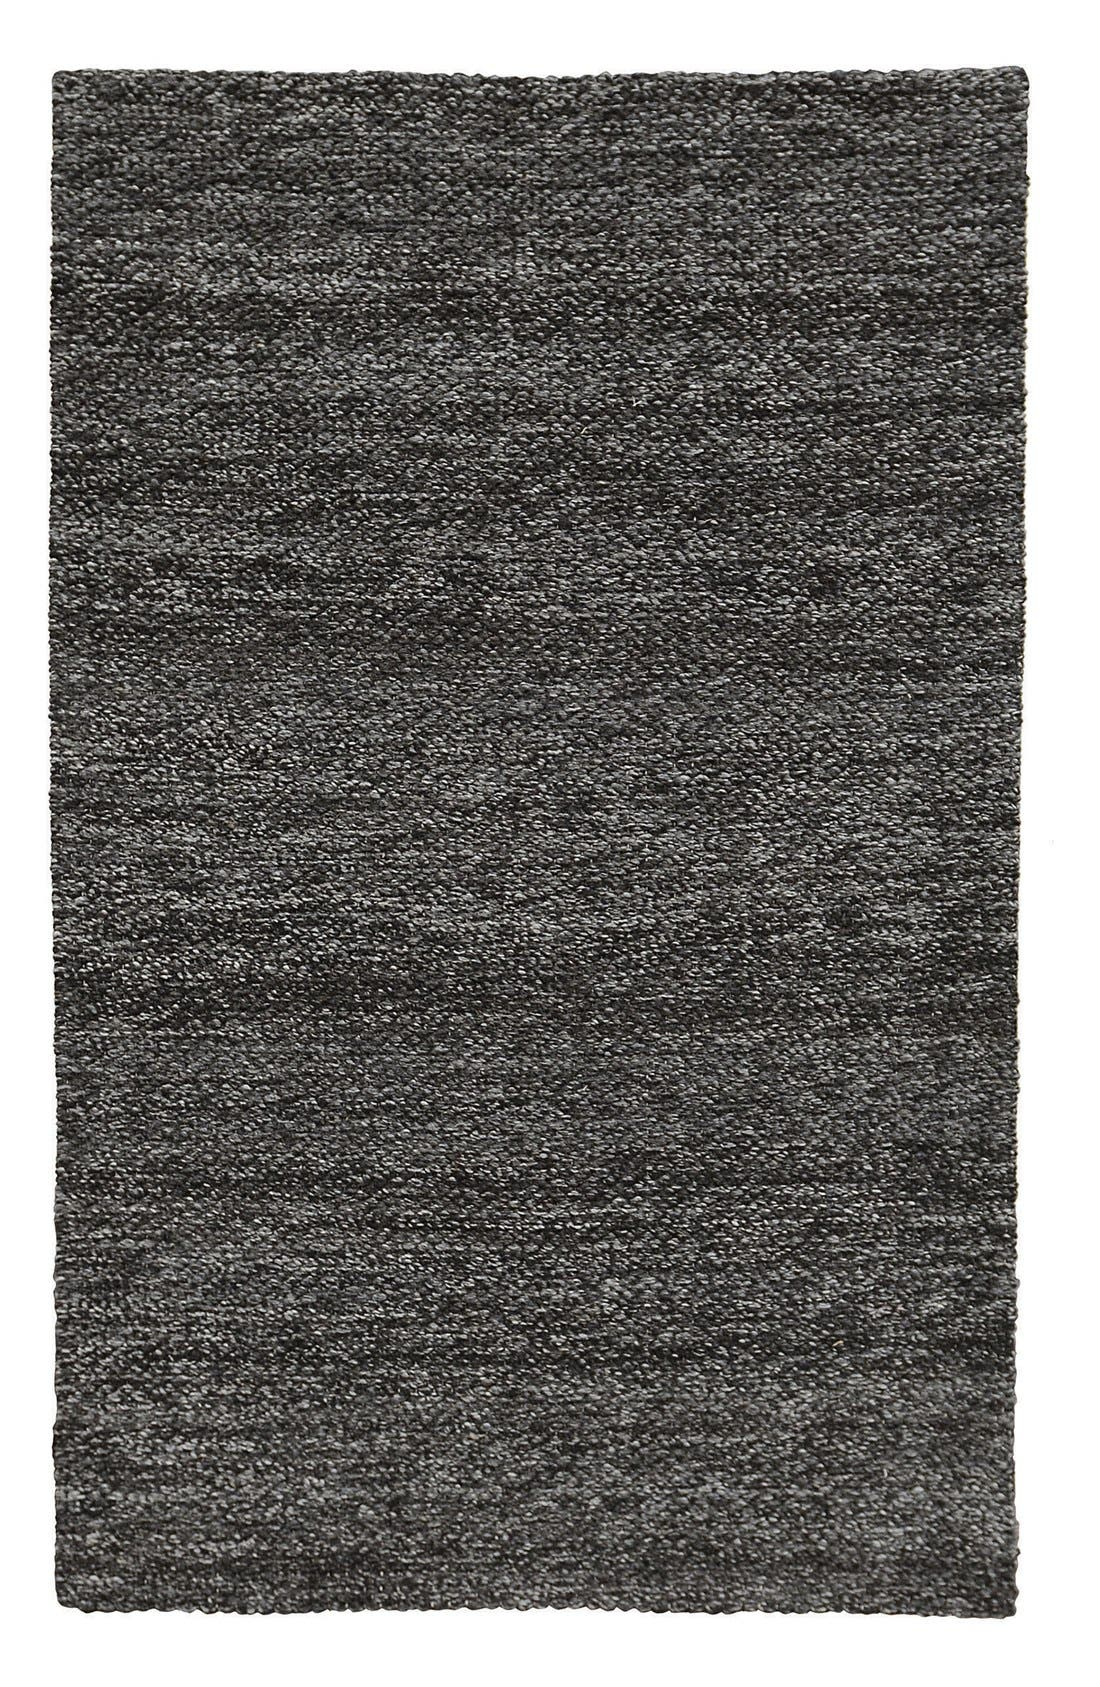 Alternate Image 1 Selected - Villa Home Collection Heathered Wool Rug